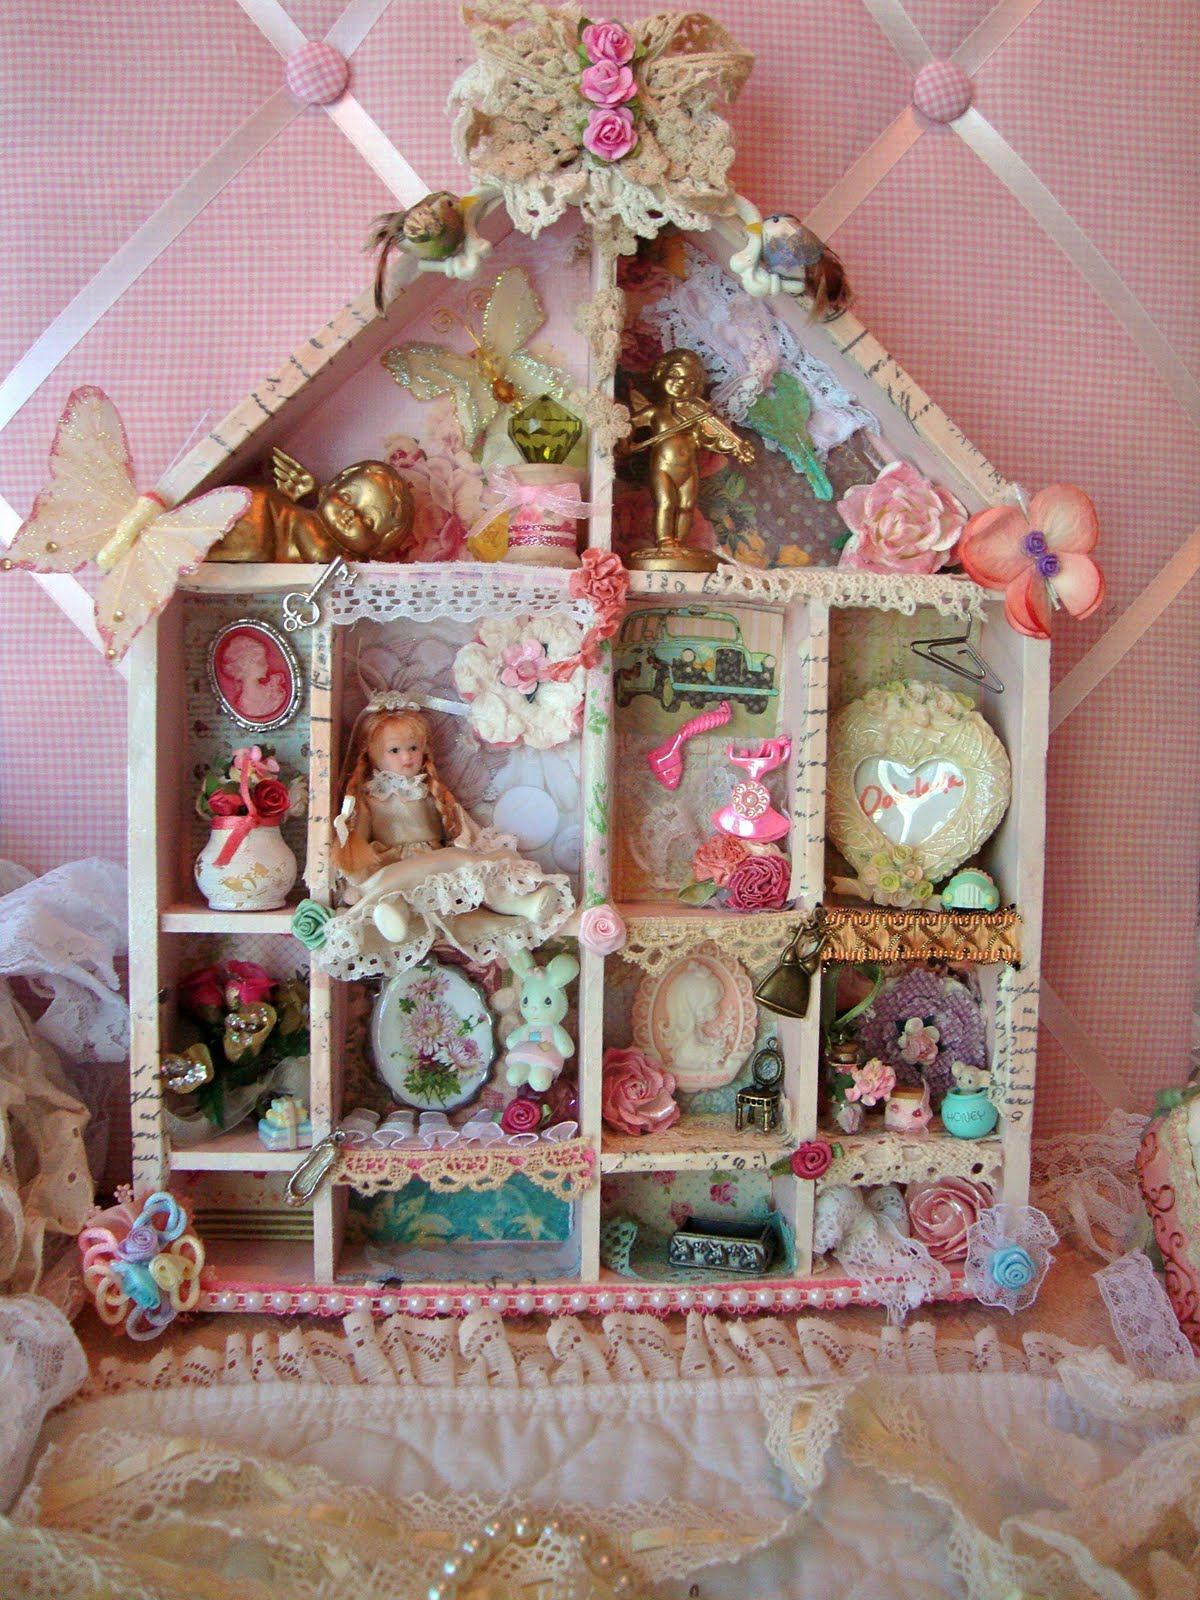 shabbychicjcouture my shabby chic shadow box. Black Bedroom Furniture Sets. Home Design Ideas